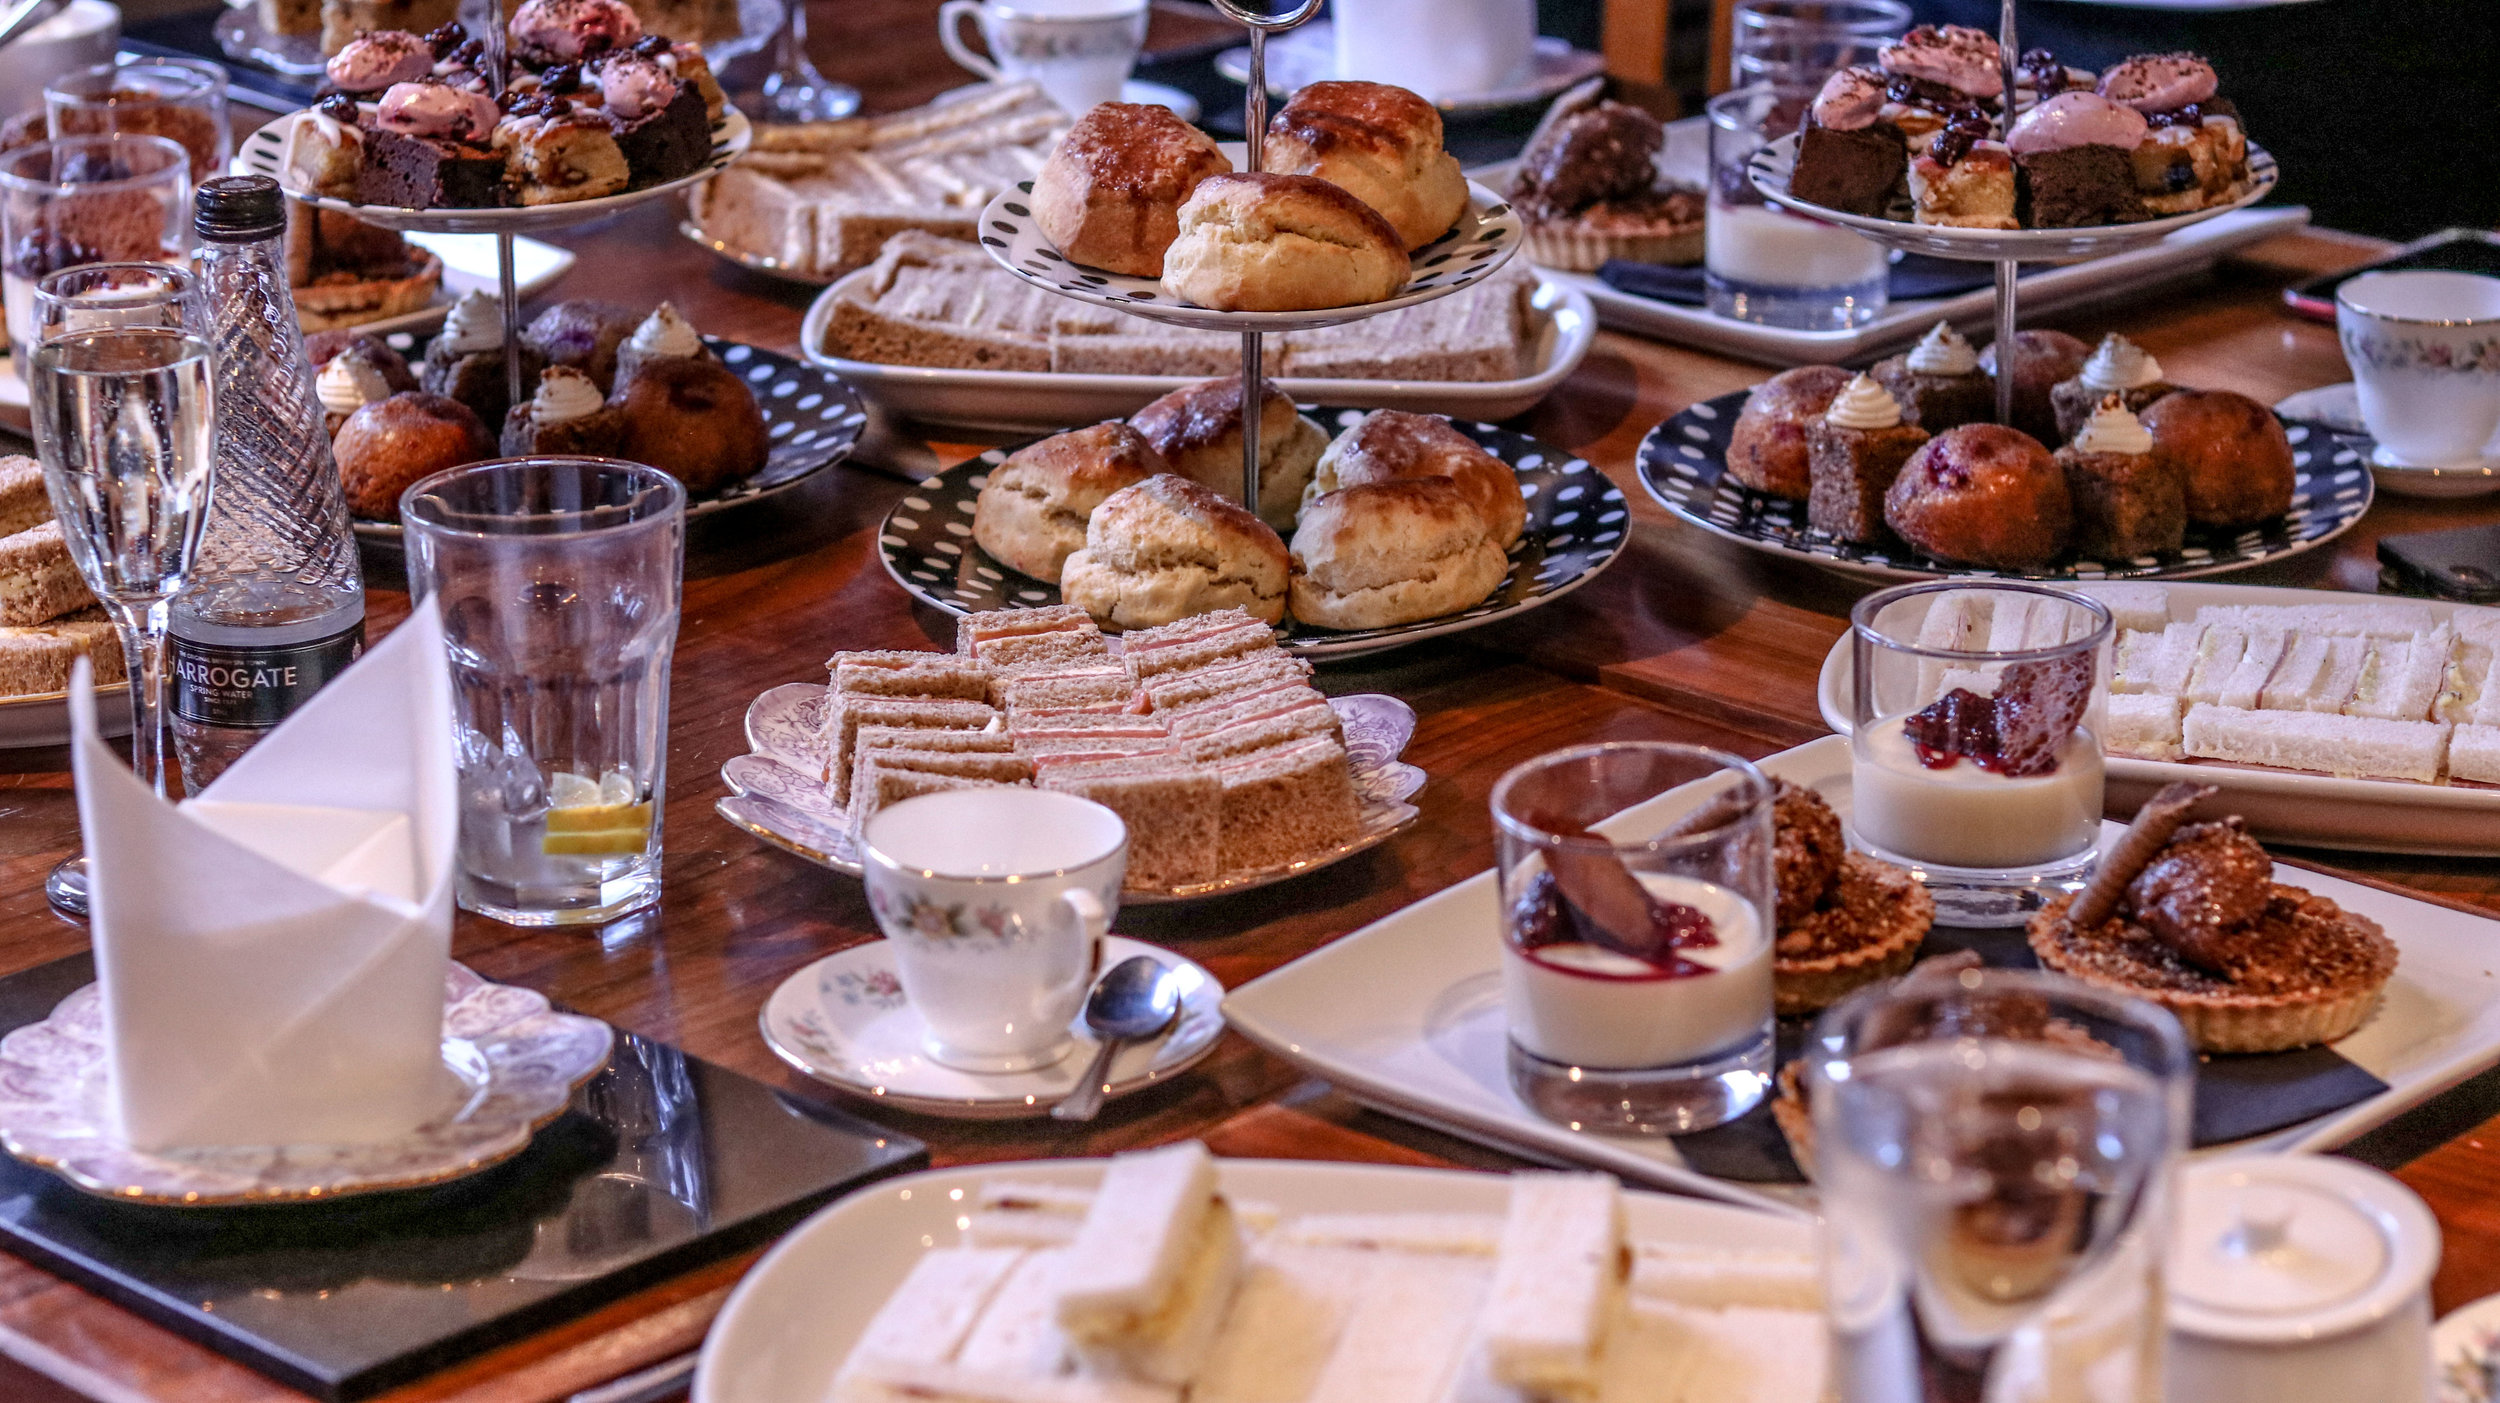 Afternoon Tea - £15 per person - Fresh scones served with jam and clotted cream, a selection of tea sandwiches, a selection of cakes along with your choice of tea or coffee.